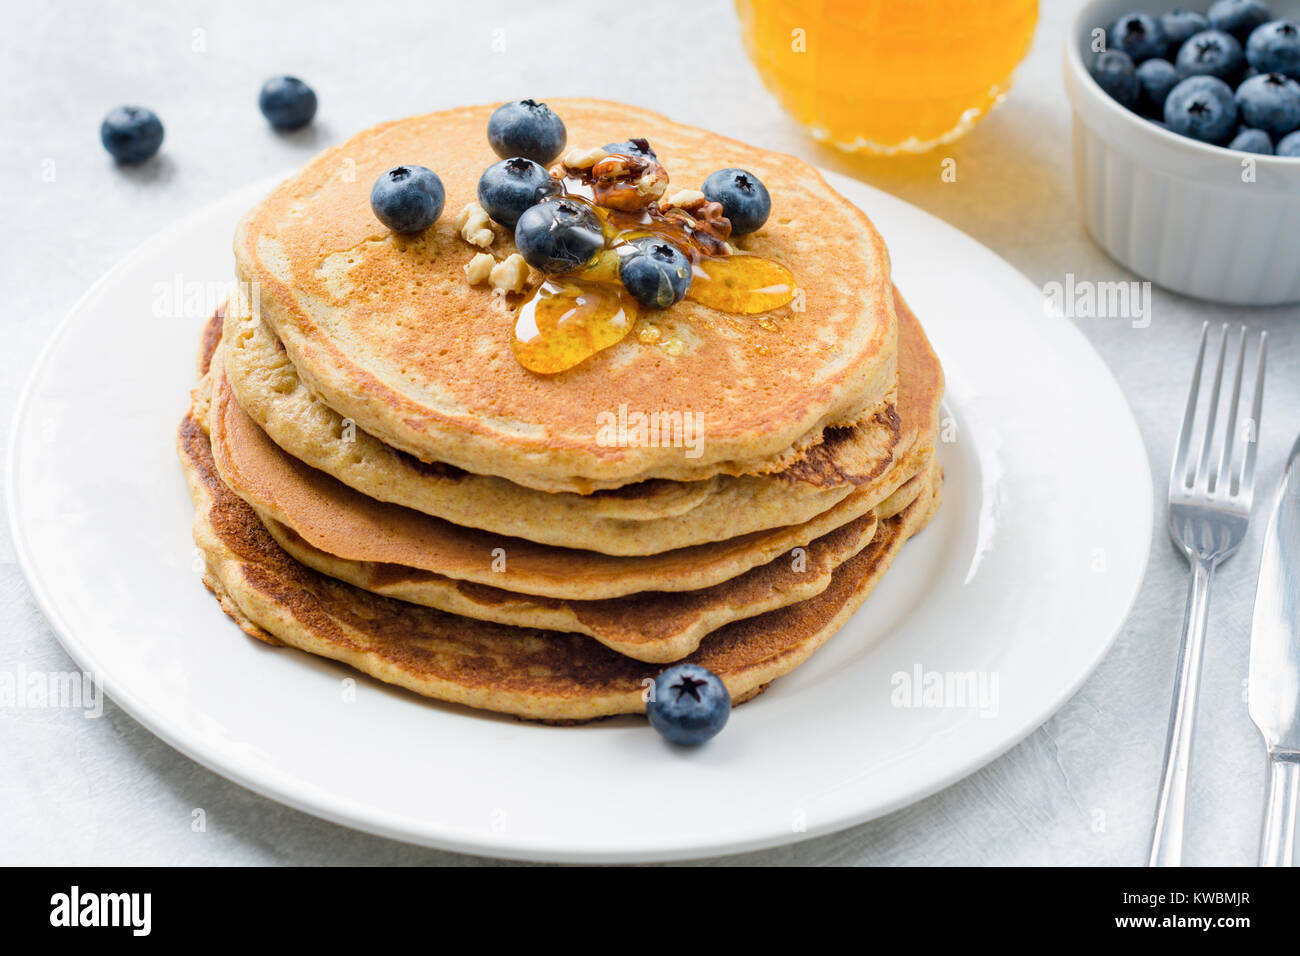 Closeup view of pancakes stack with blueberries, walnuts and honey on white plate. Tasty healthy breakfast food. Stock Photo